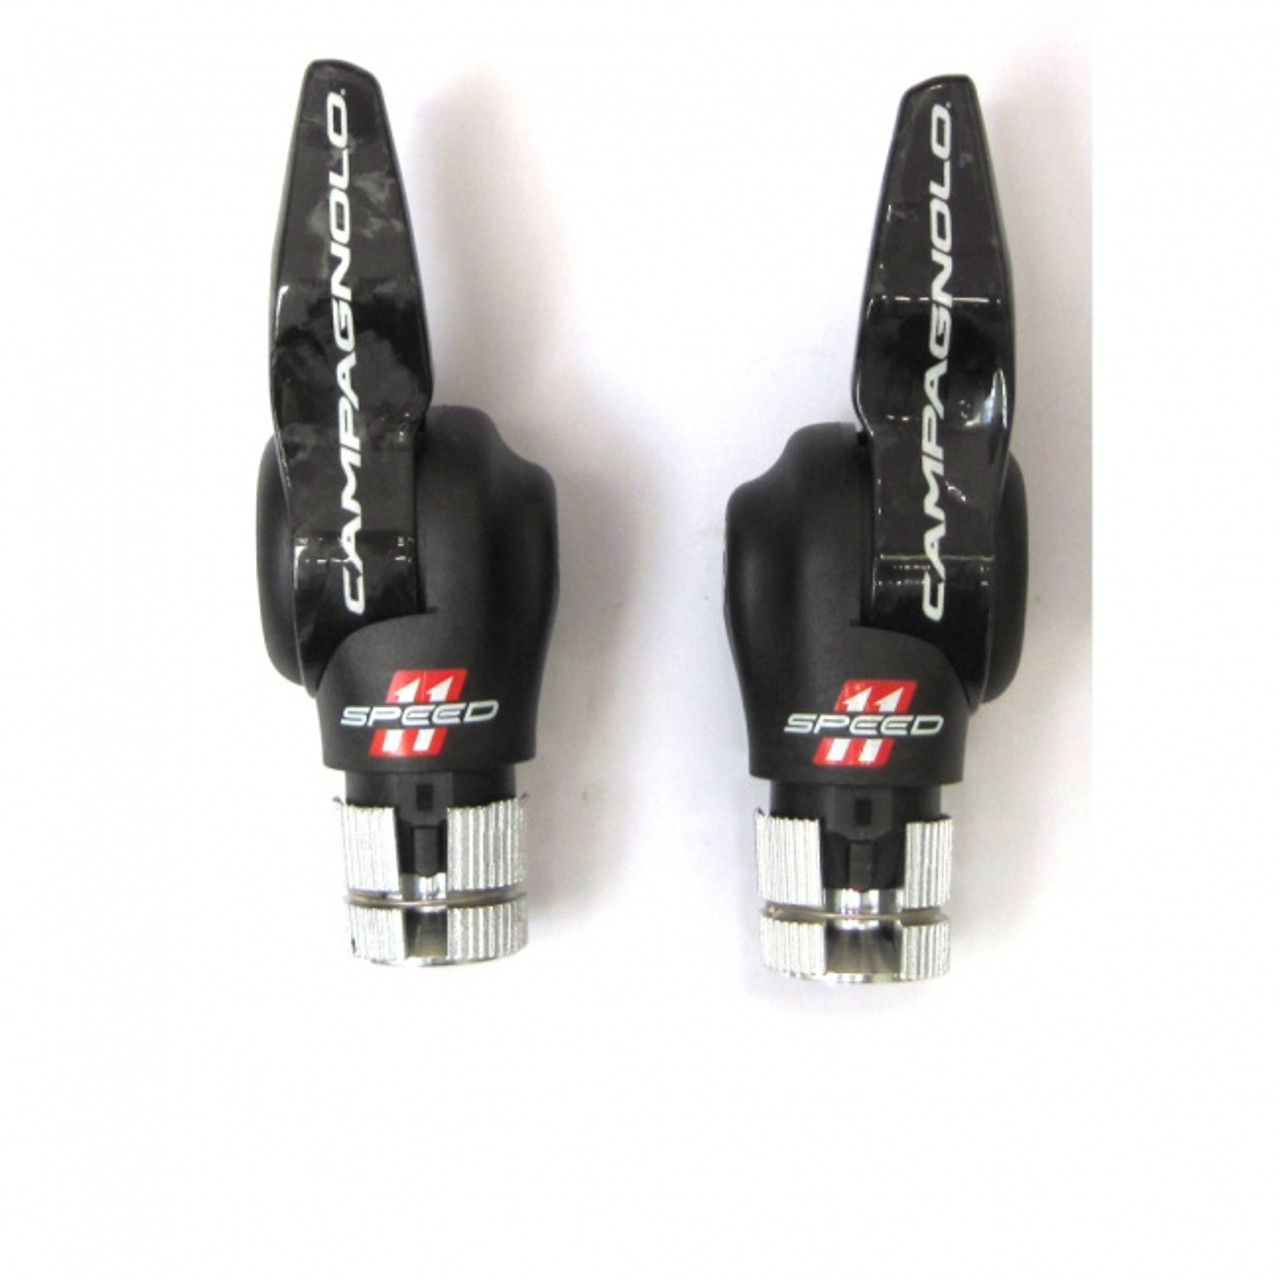 Campagnolo SL12-TTCGC 11 Speed TT Carbon Shifters Bar End In Black